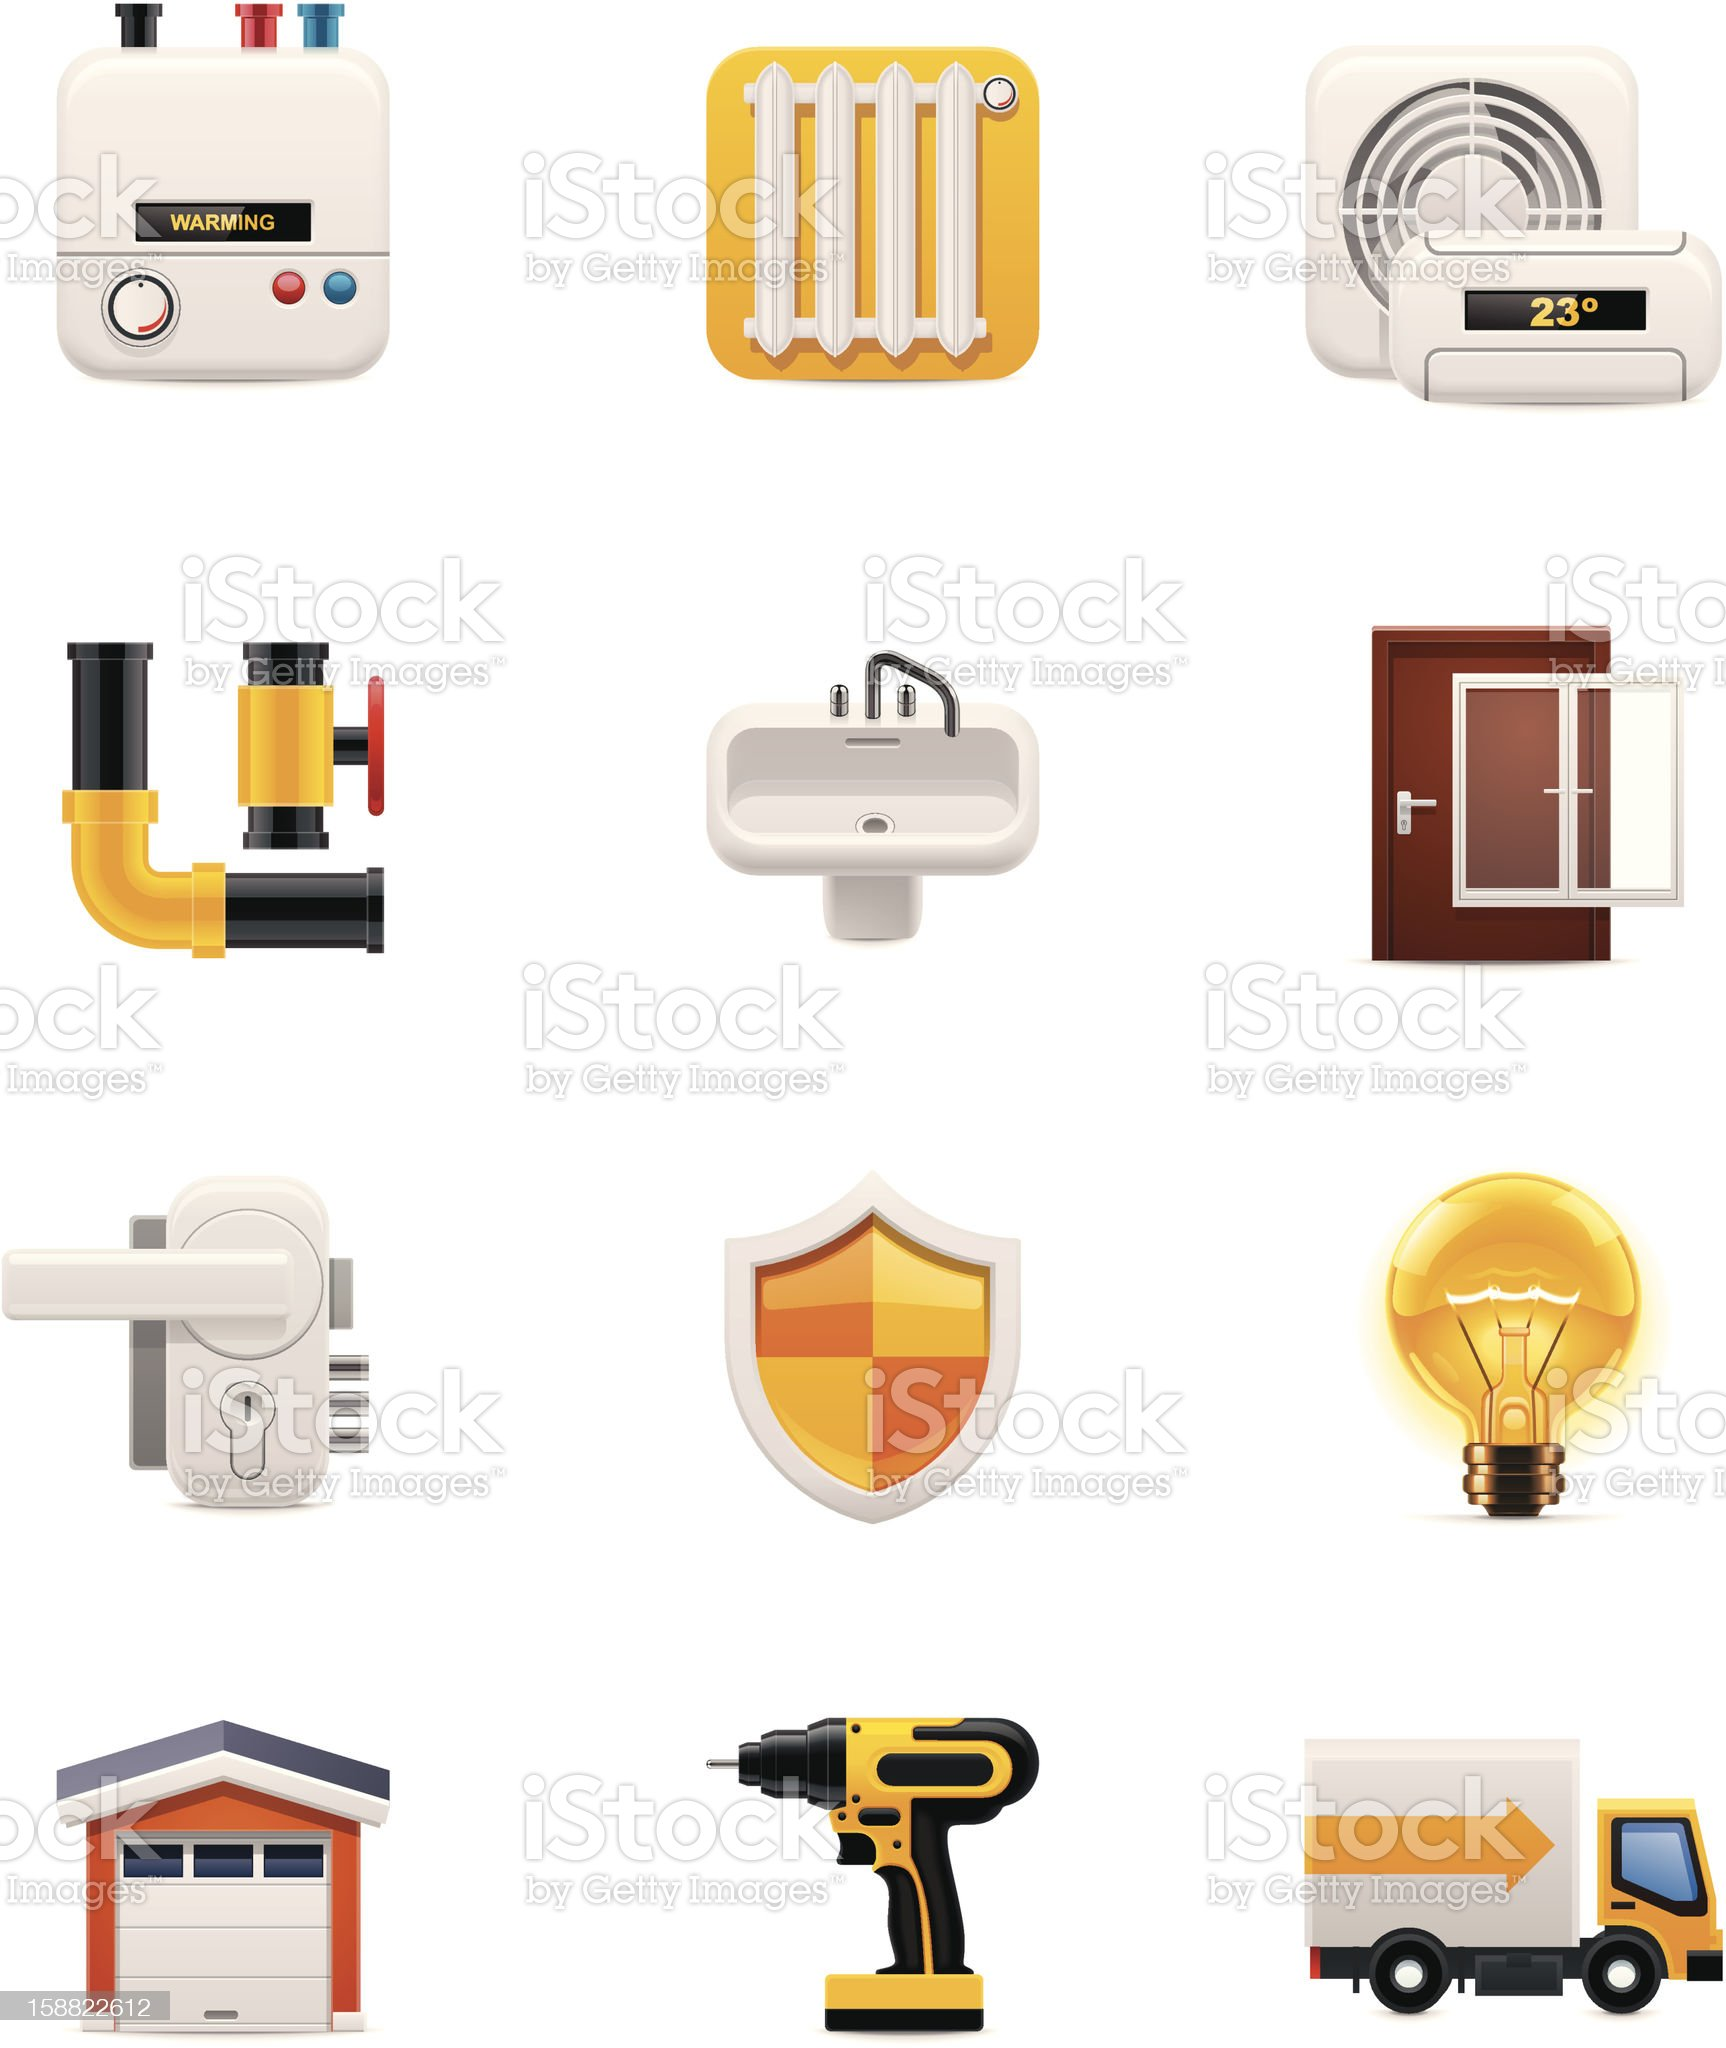 House renovation icon on a white background royalty-free stock vector art